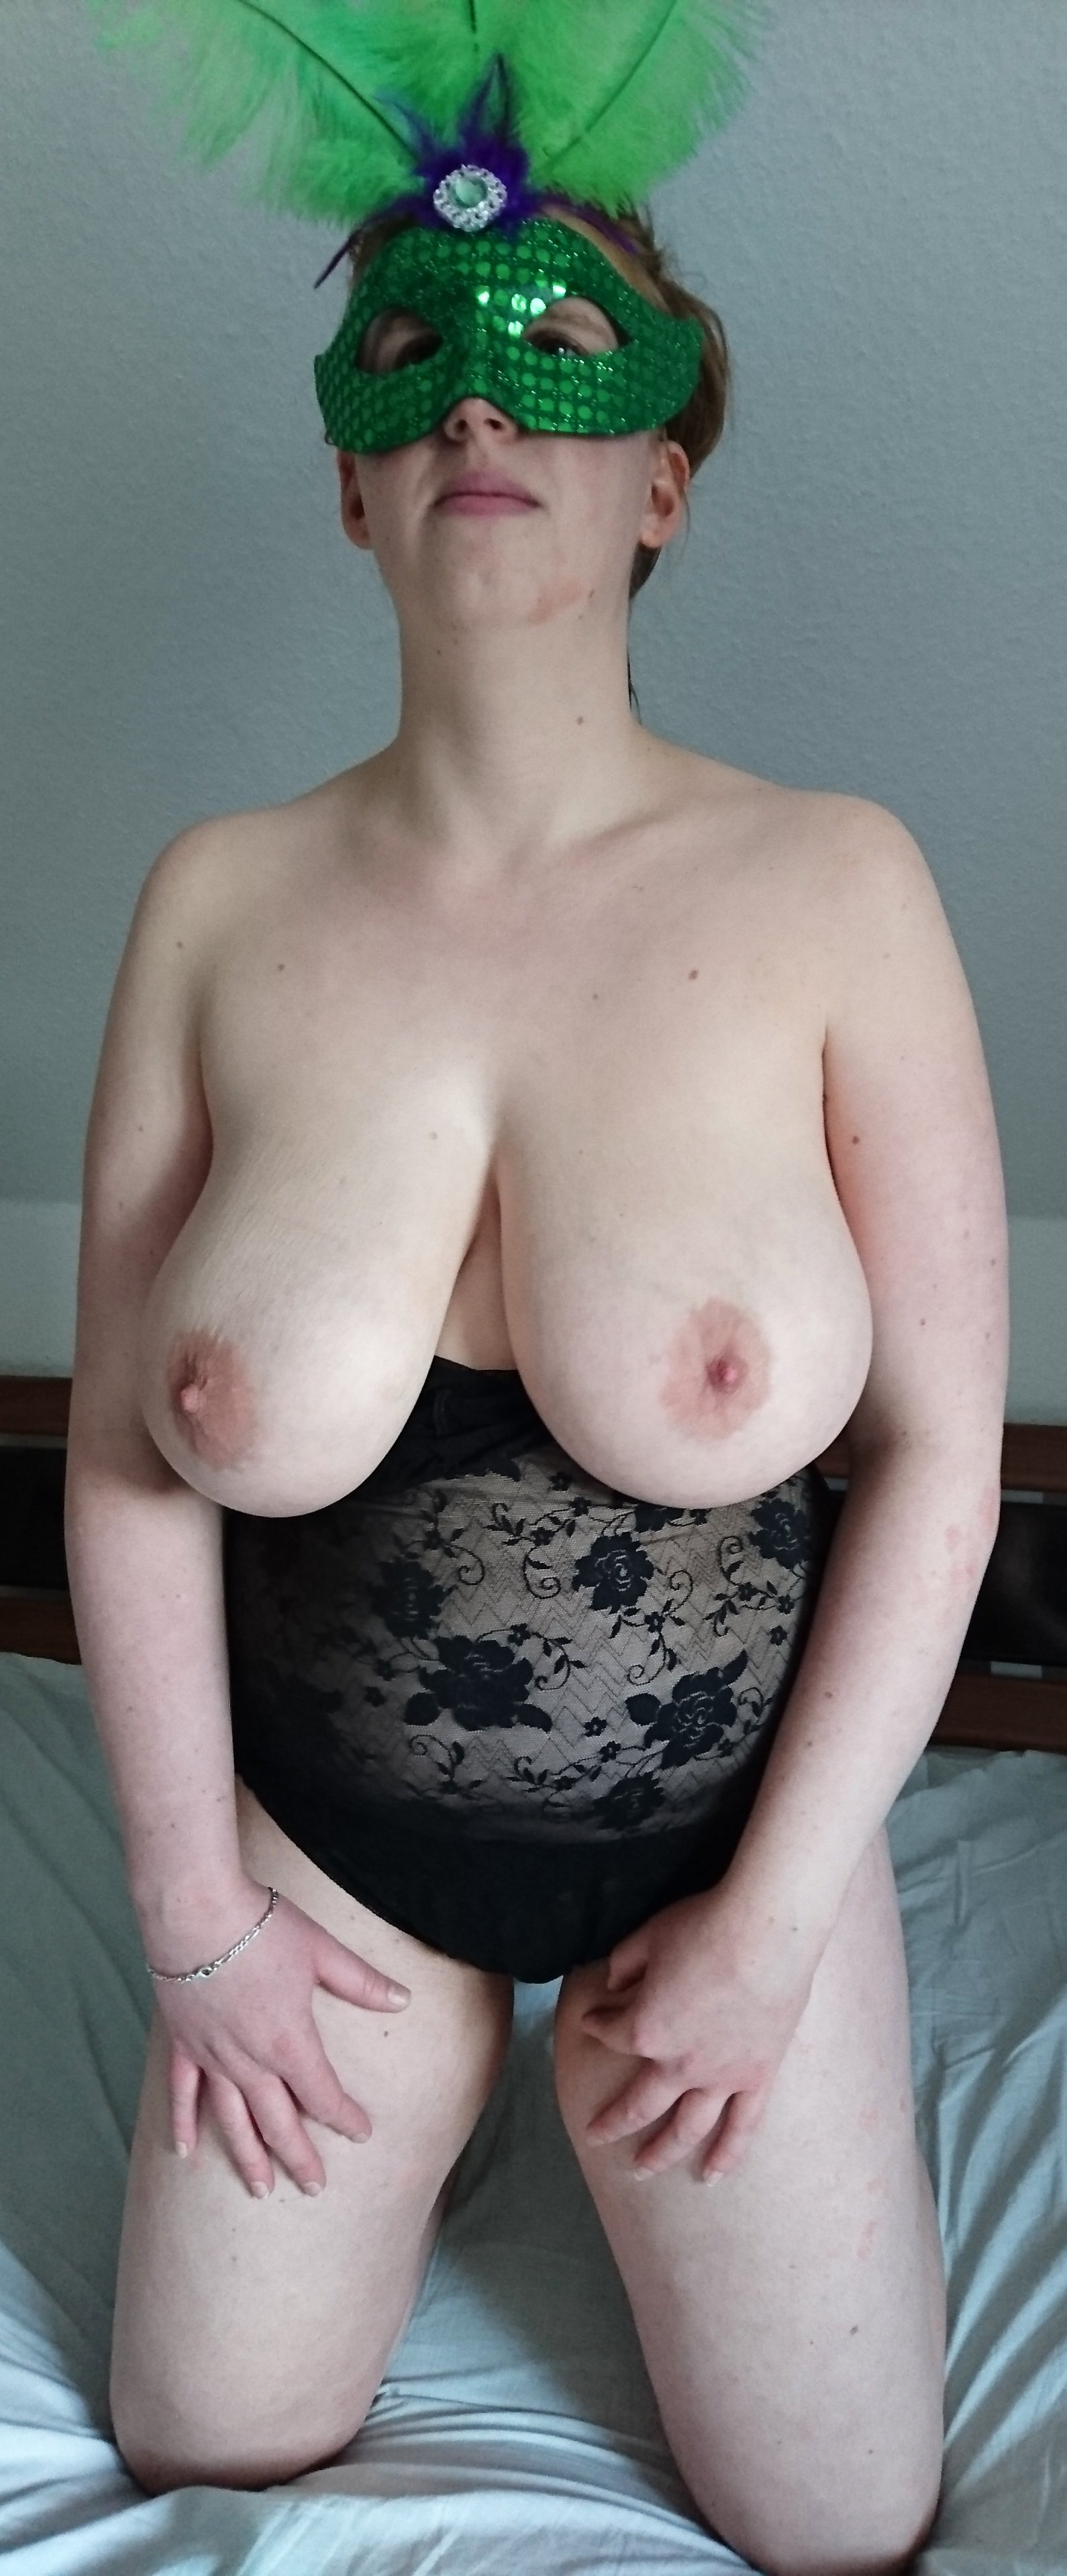 Milf amateur nude Amateur Milf Shows Her Big Boobs And Naked Body Sexpin Net Free Porn Pics And Sex Videos